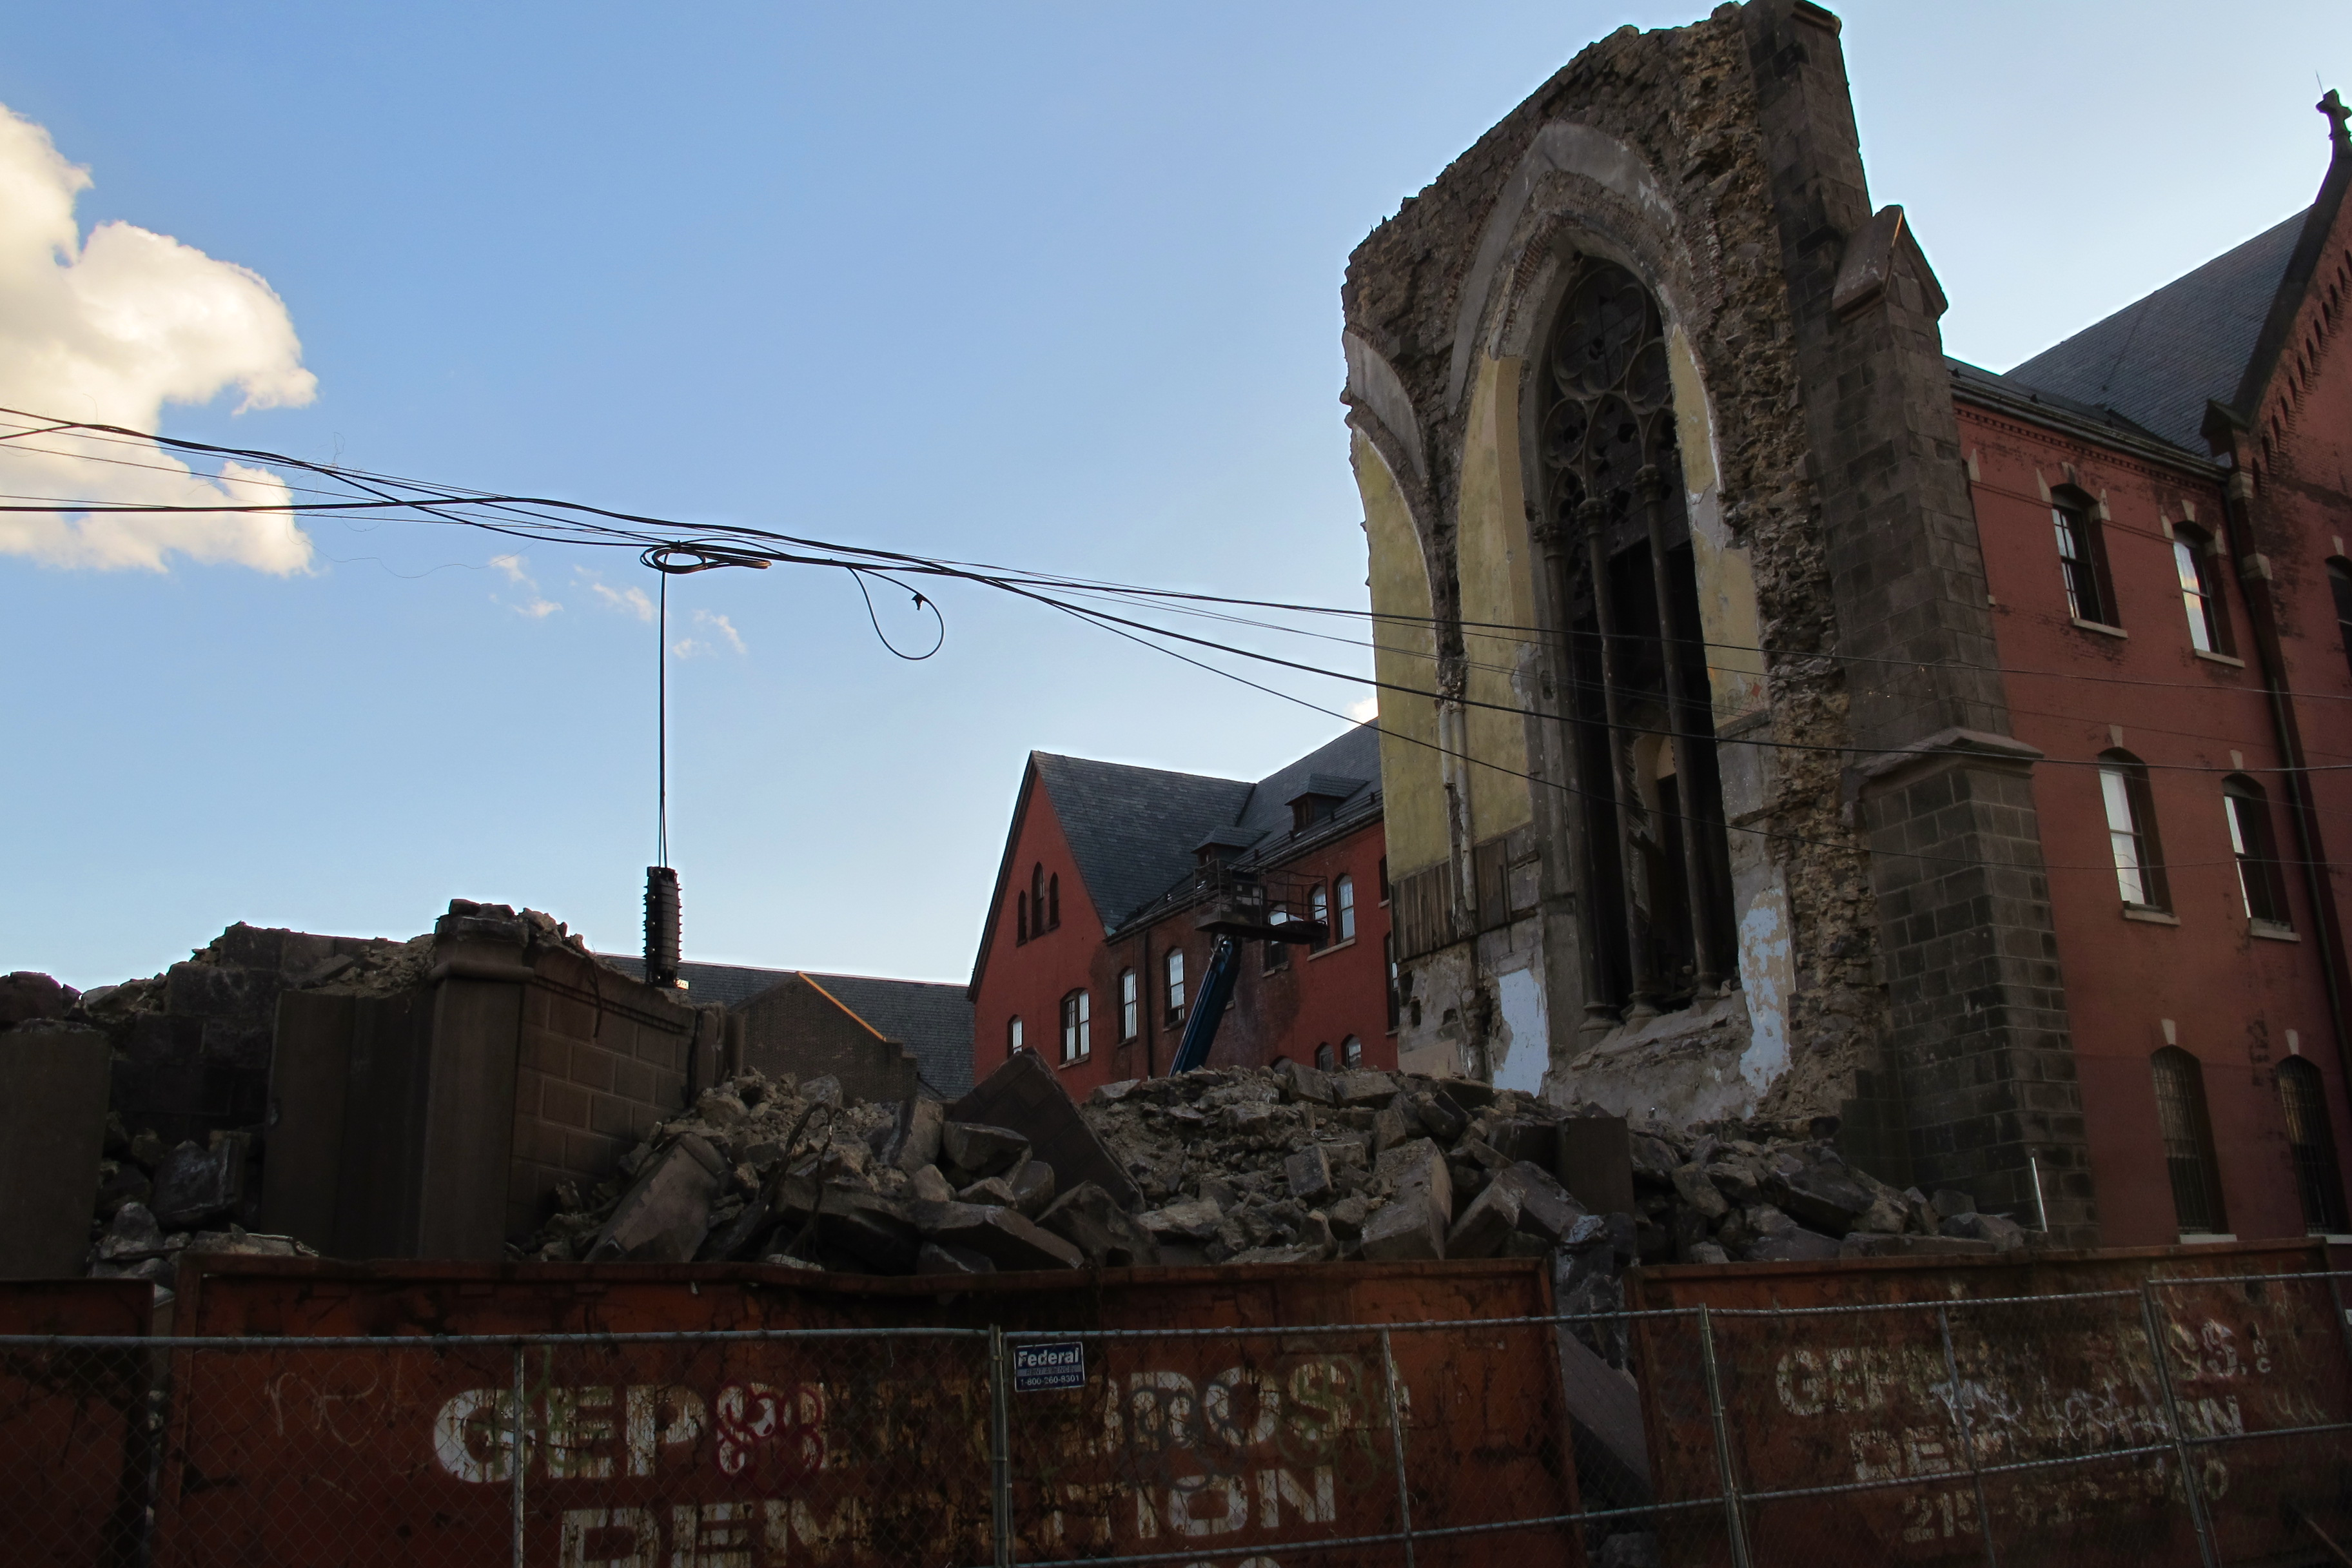 St. Boniface Church was demolished in April, 2012